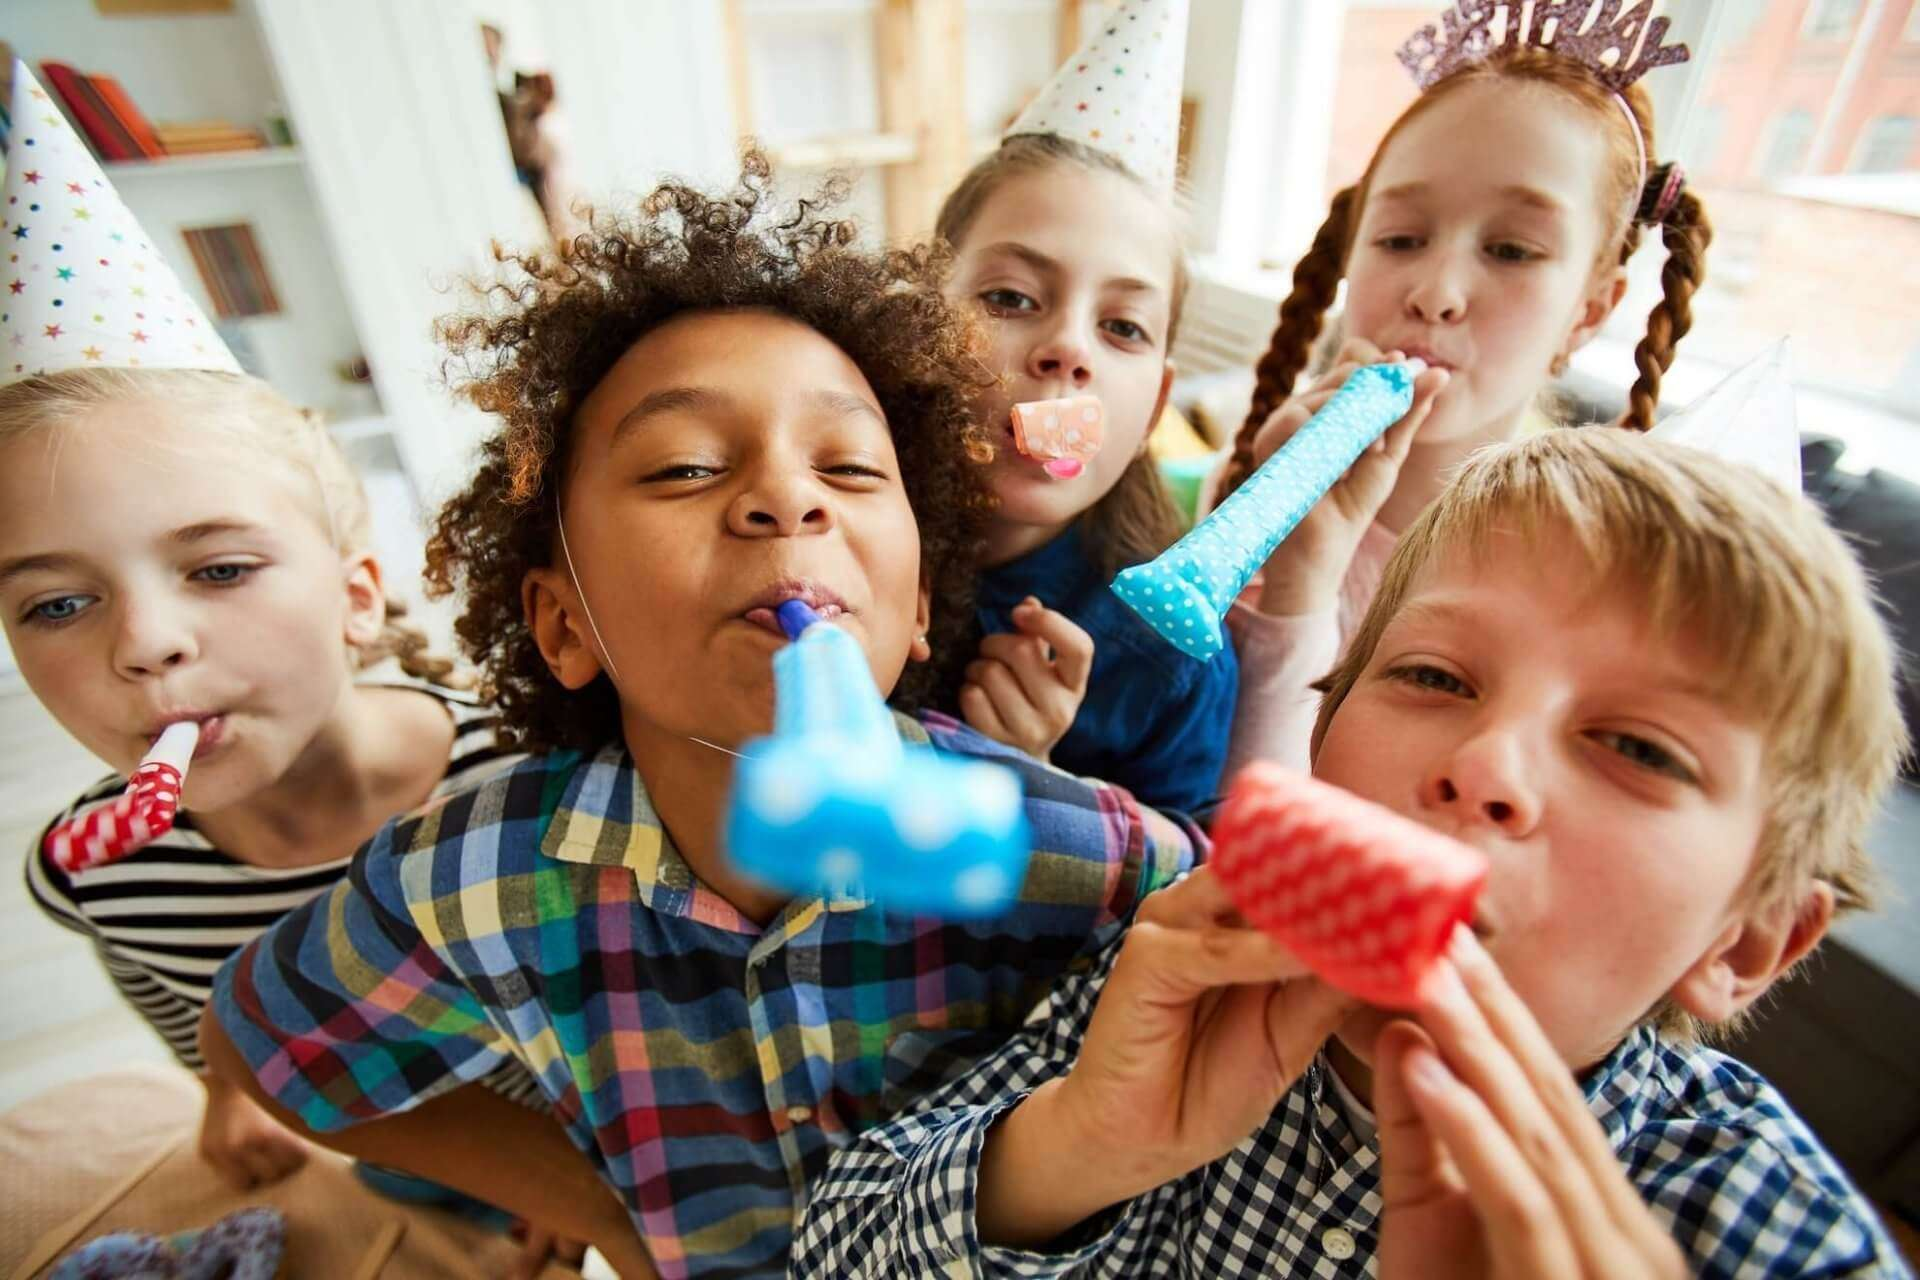 happy-kids-blowing-party-horns-4UDX265-e1589820925427.jpg